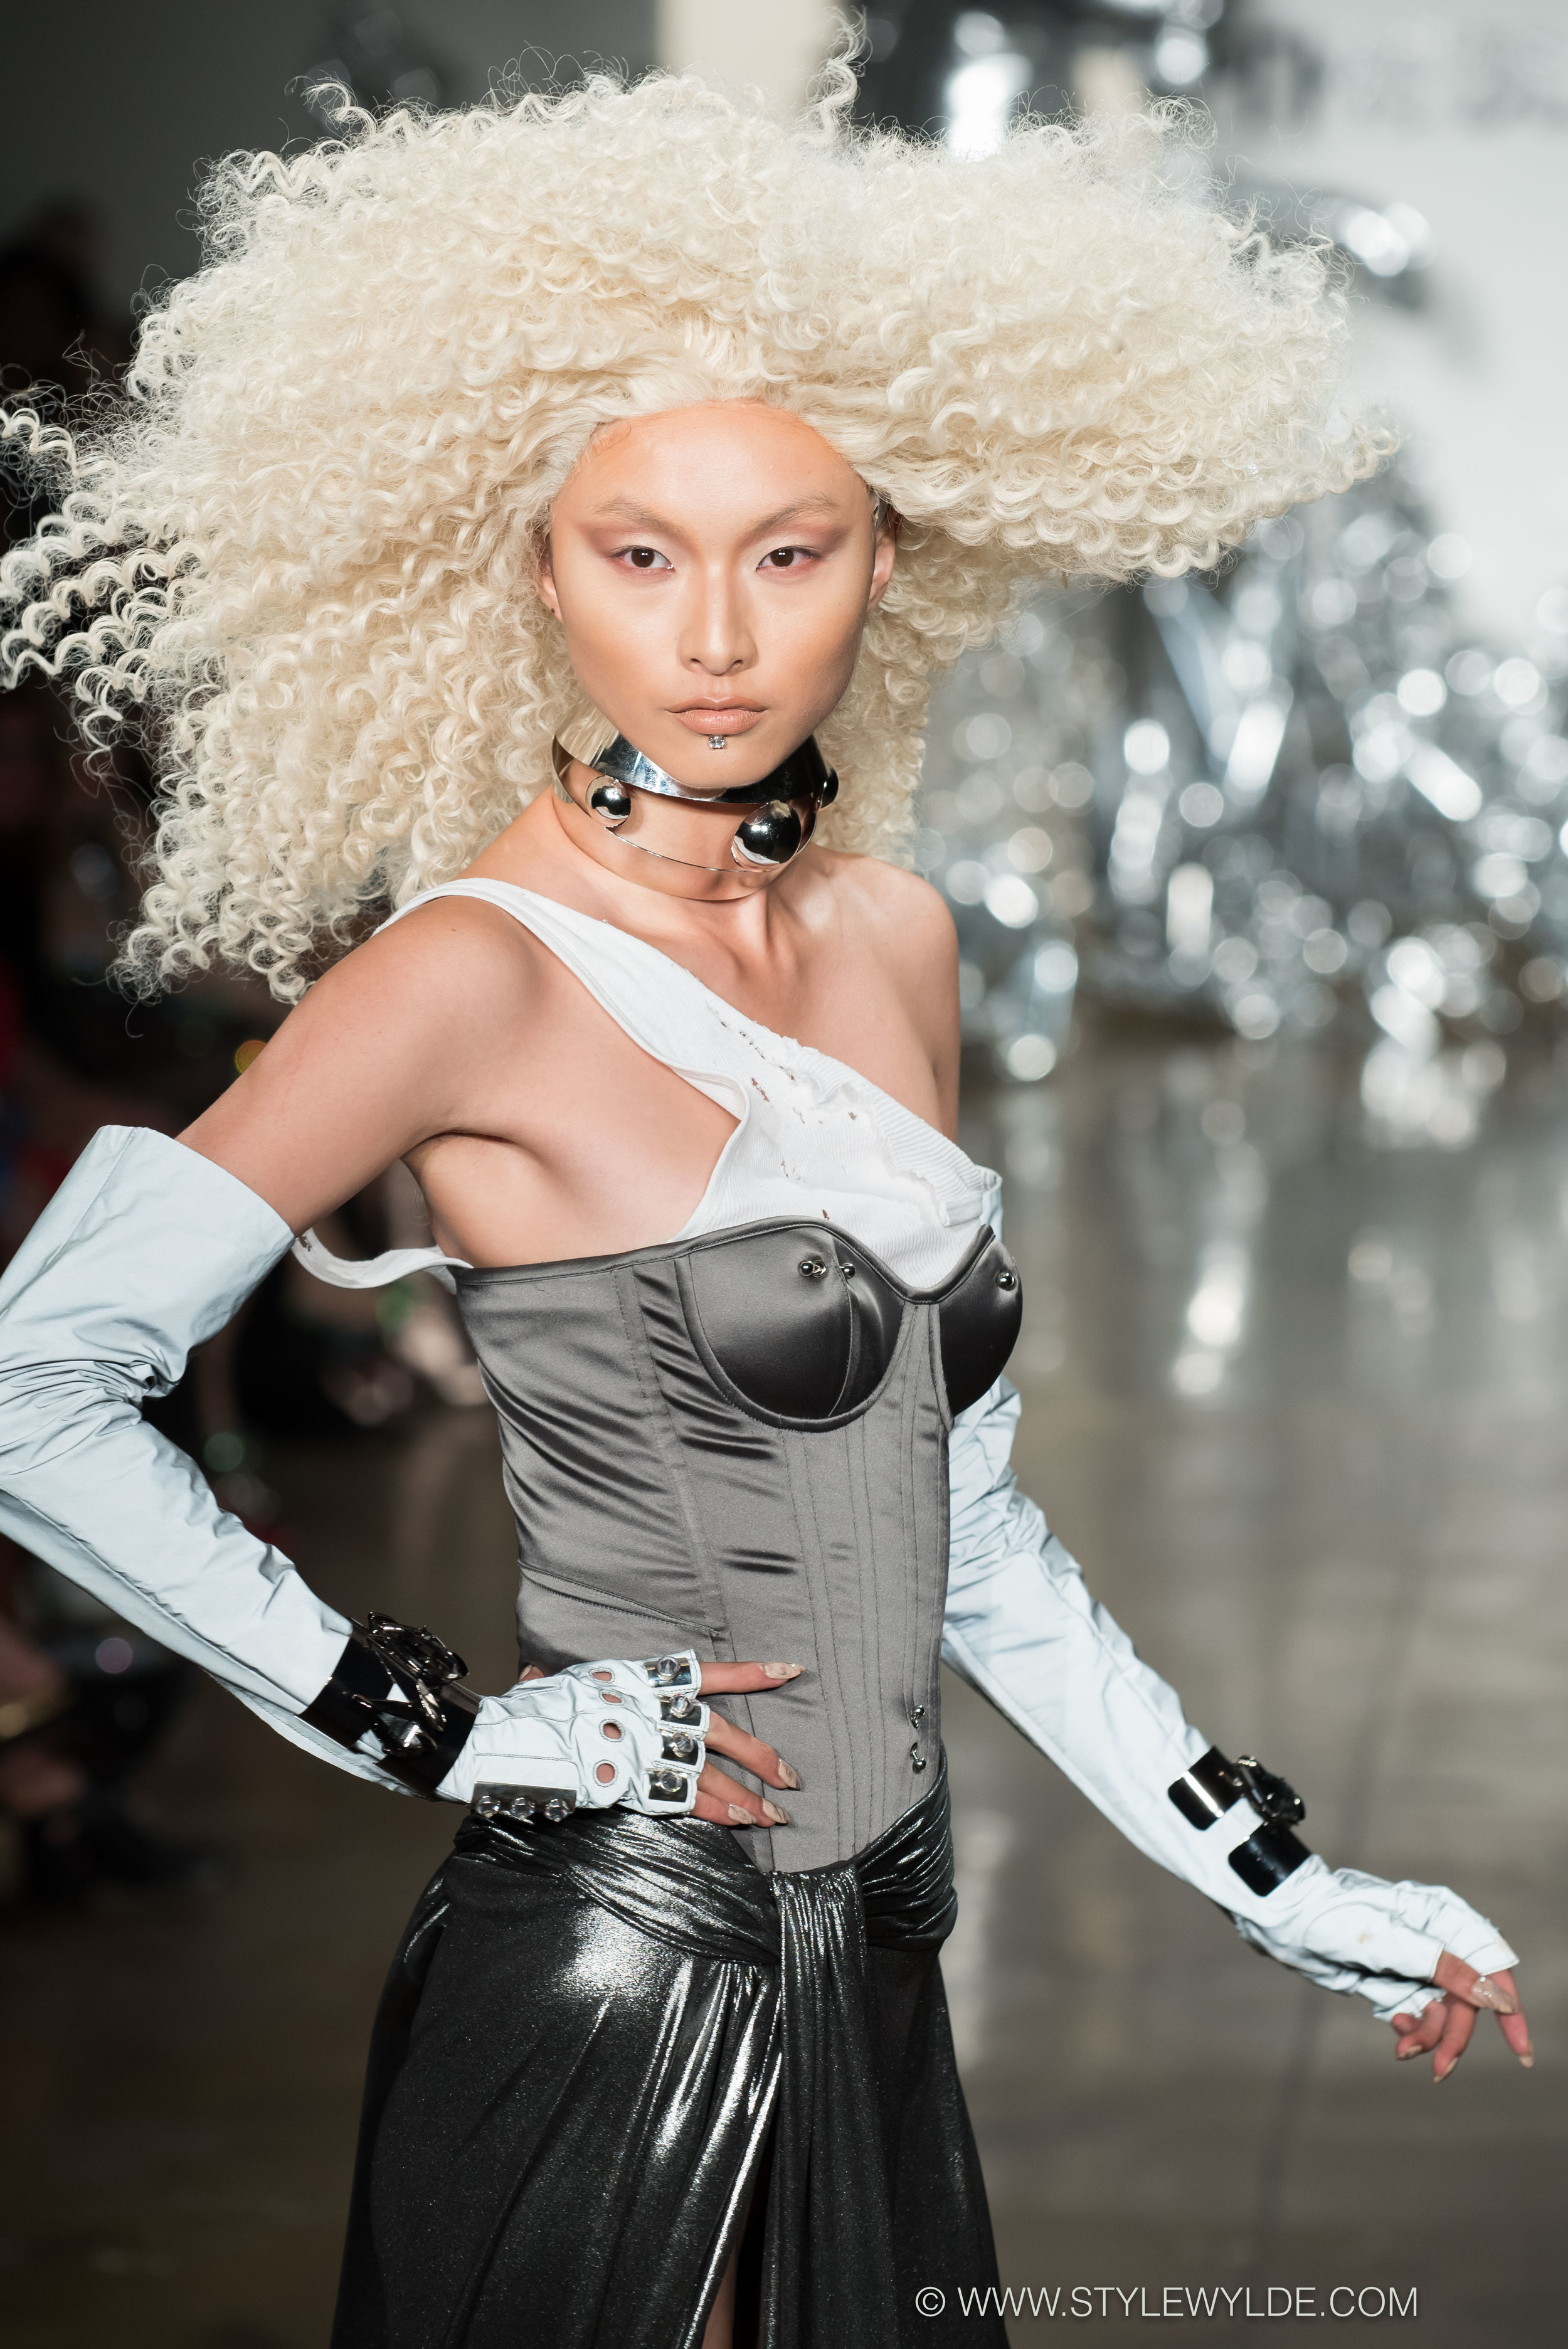 stylewylde-The Blonds SS17-FOH- Edits-37.jpg